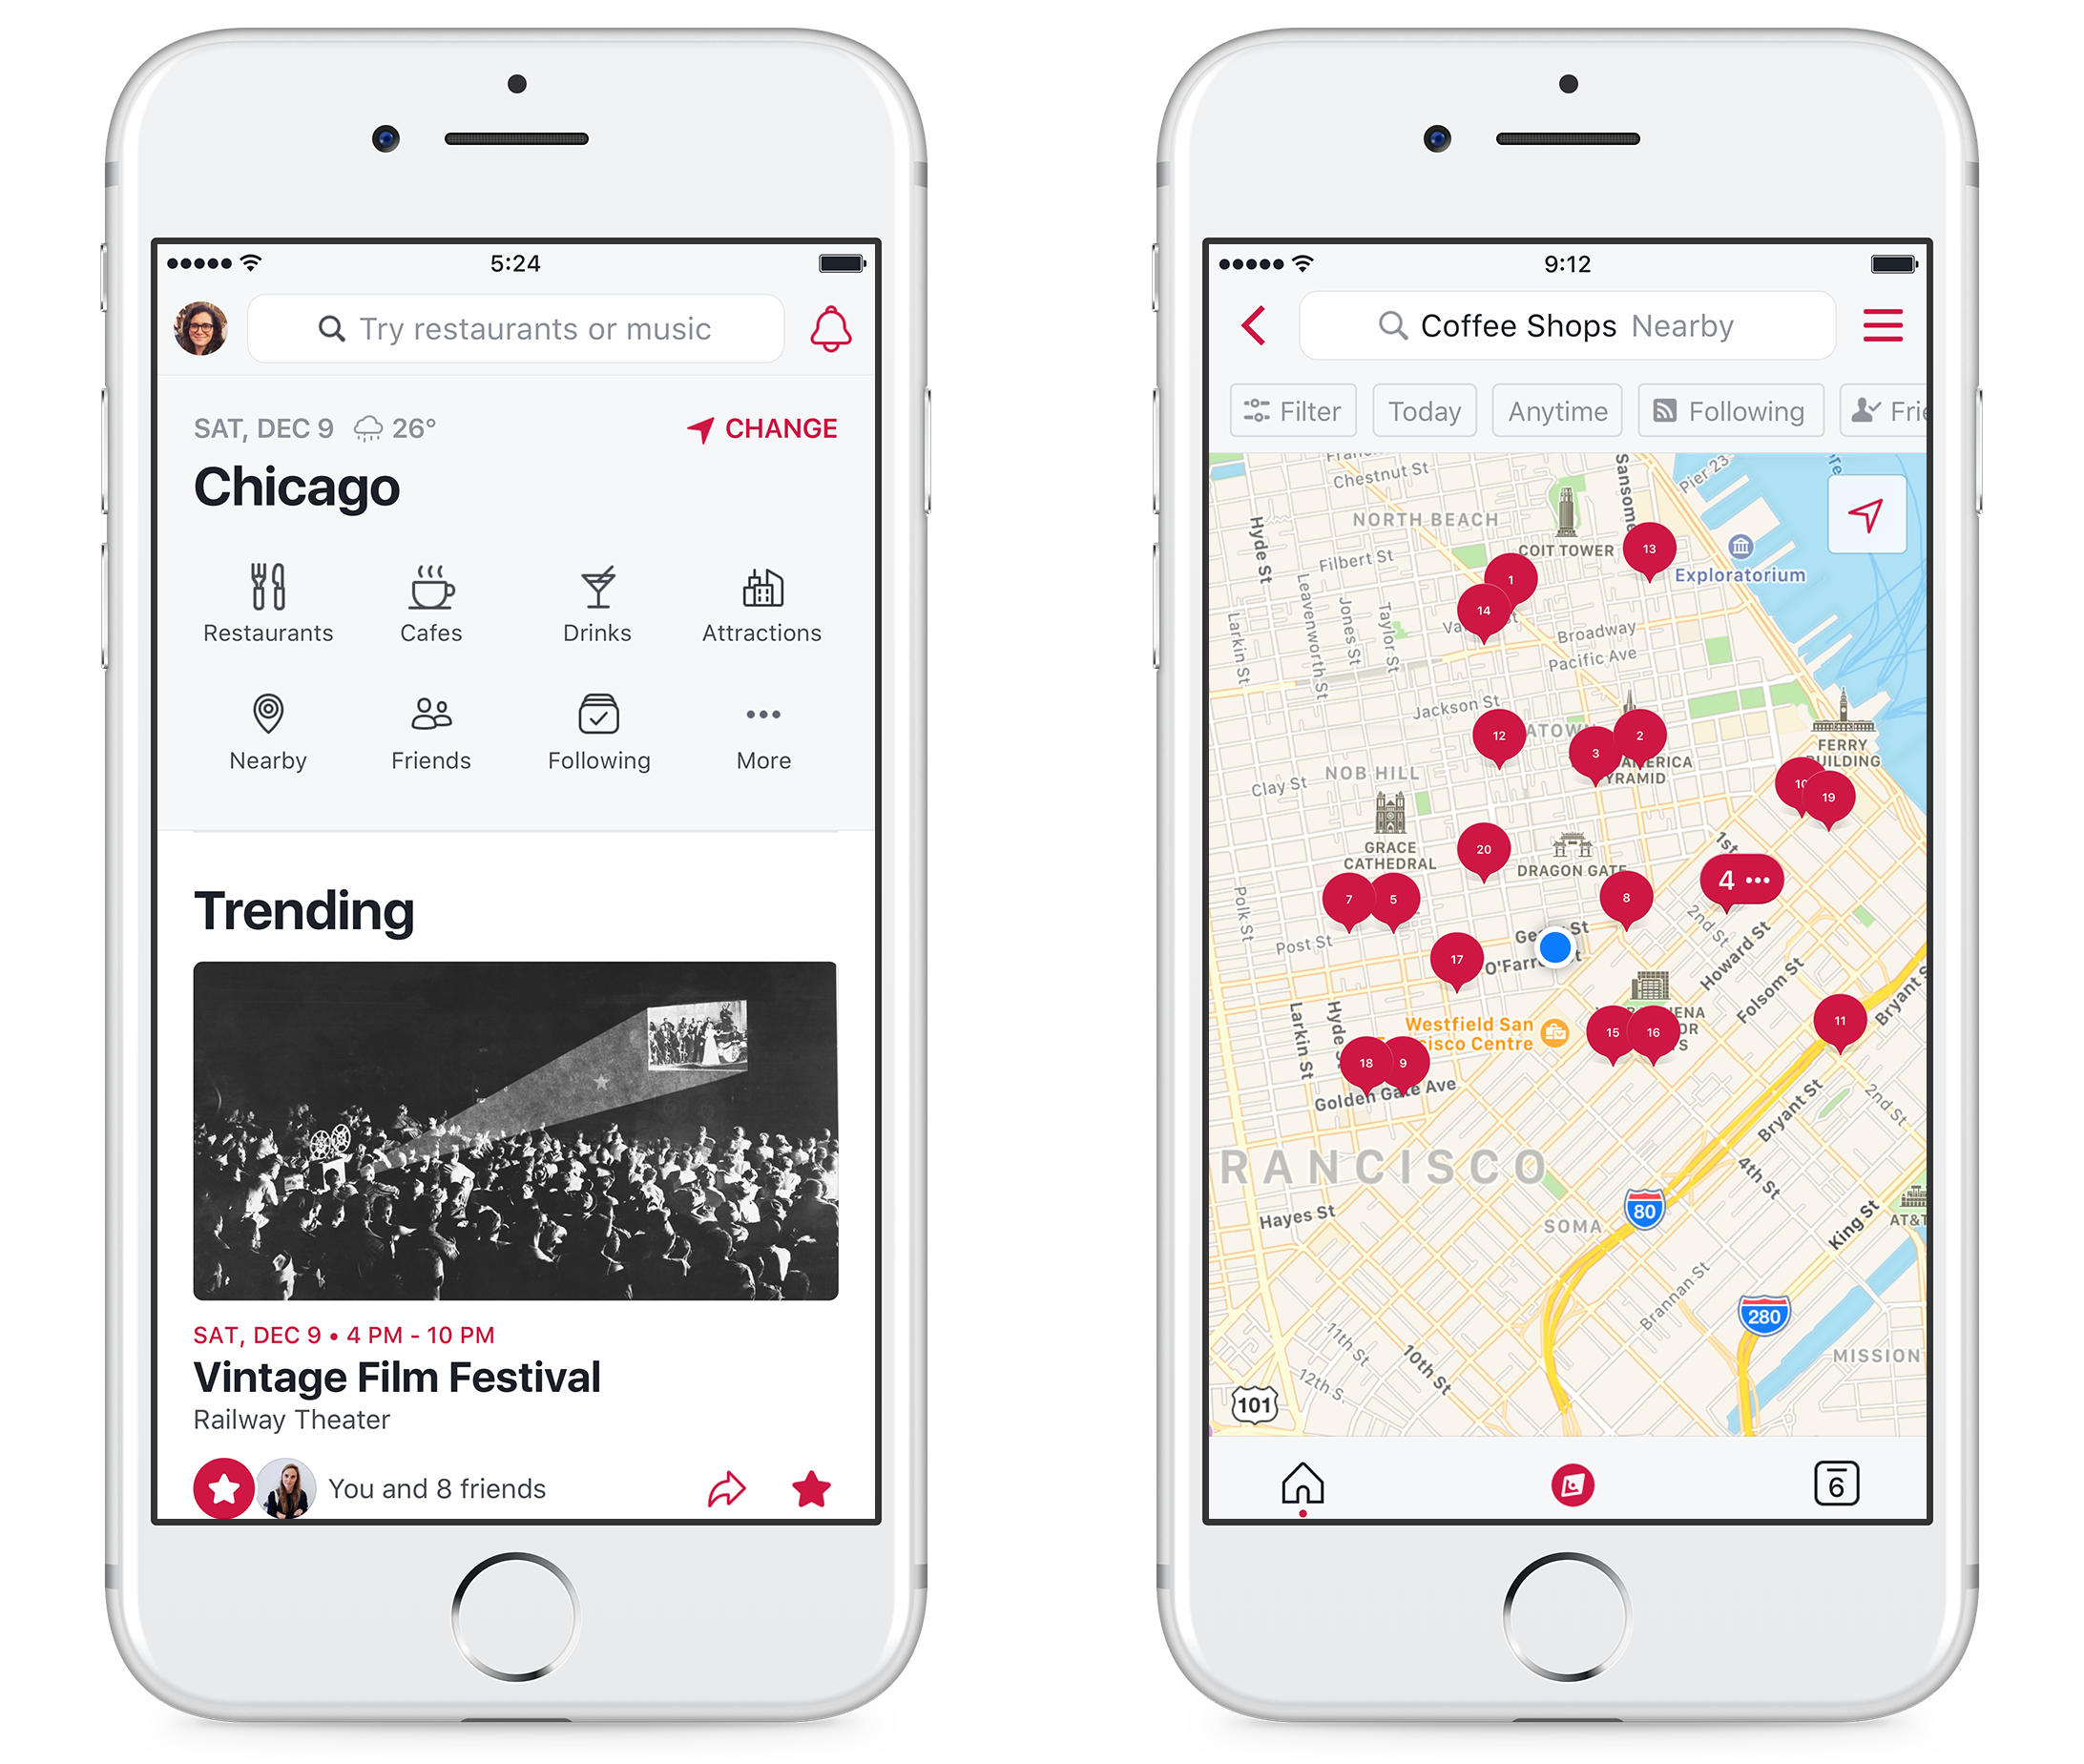 Facebook's 'Local' to bring together restaurants, events